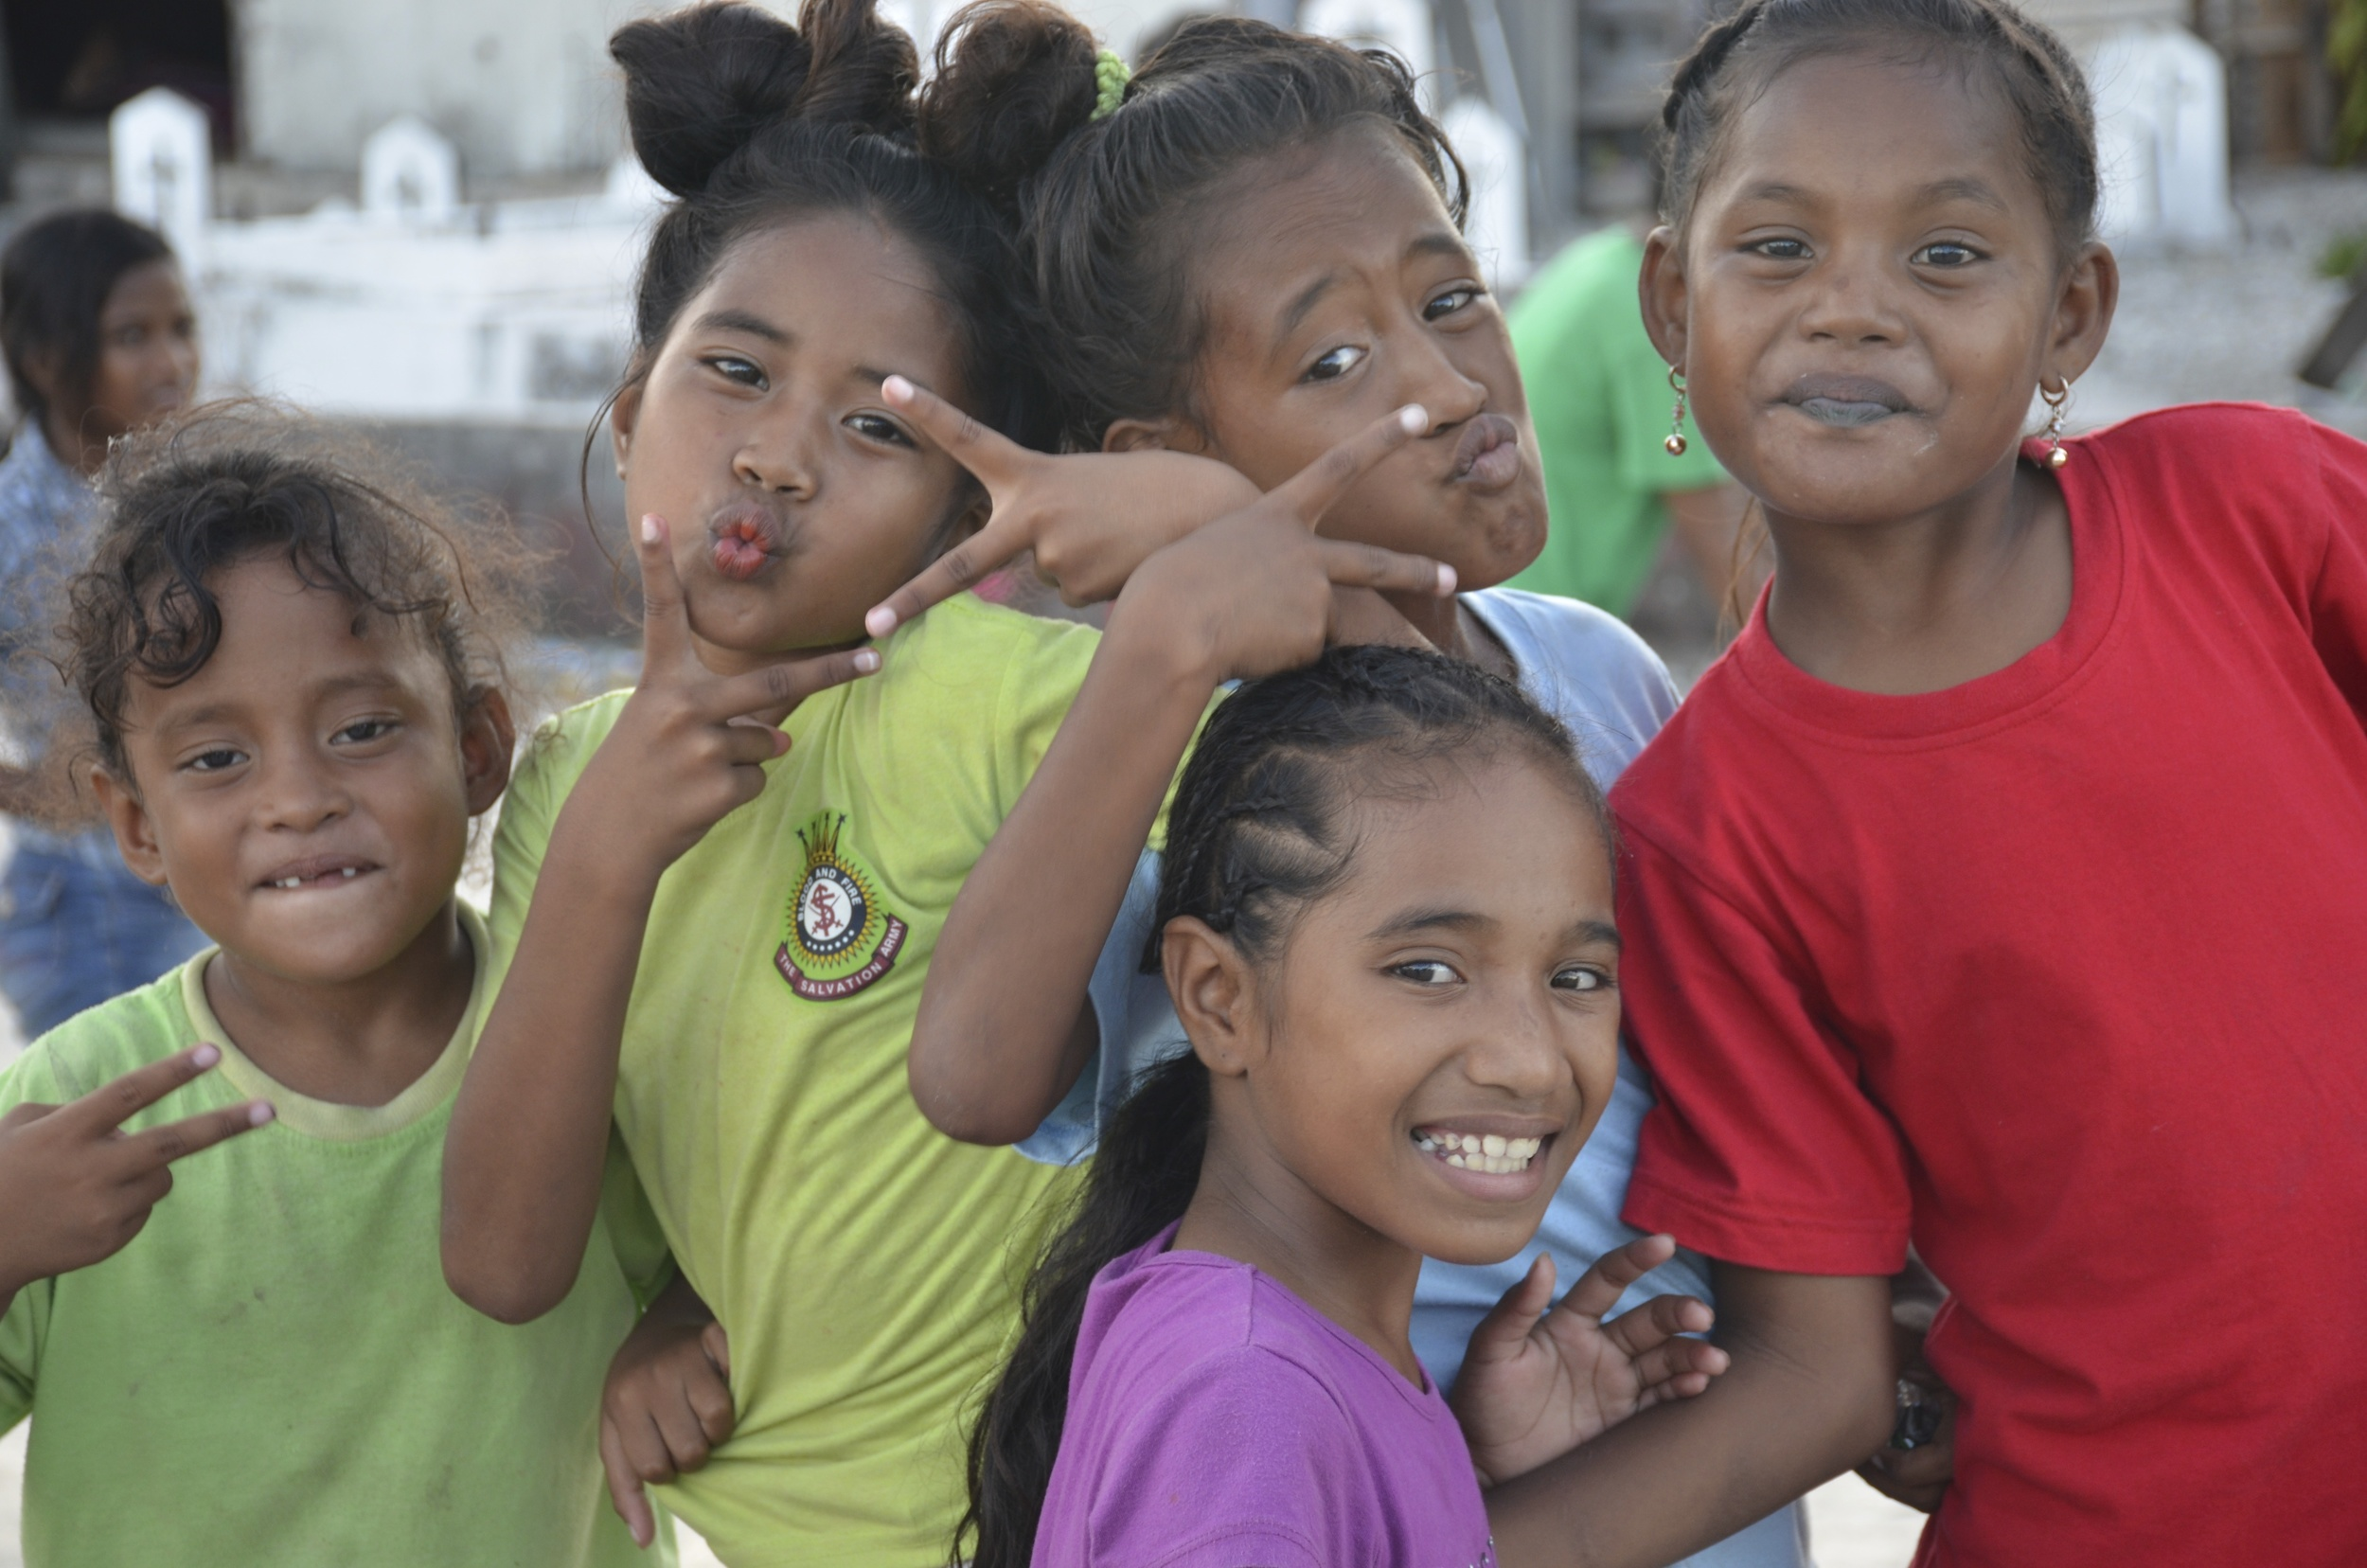 It's impossible to get Marshallese kids to act naturally in front of a camera.